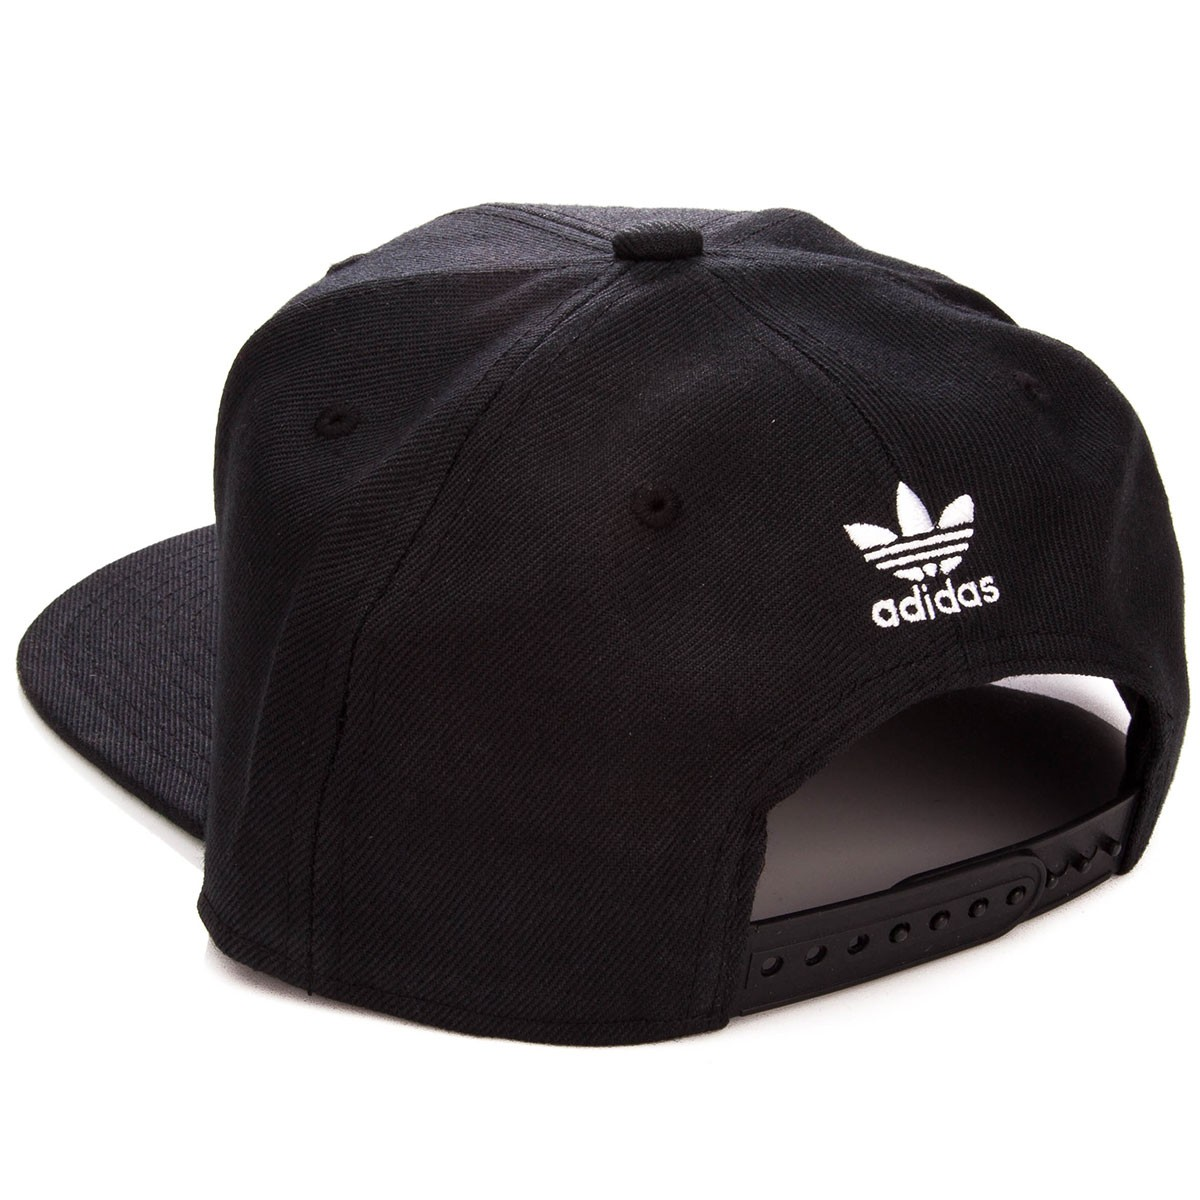 Adidas Originals Thrasher Chain Snapback Hat - Black White 50ad220bddc